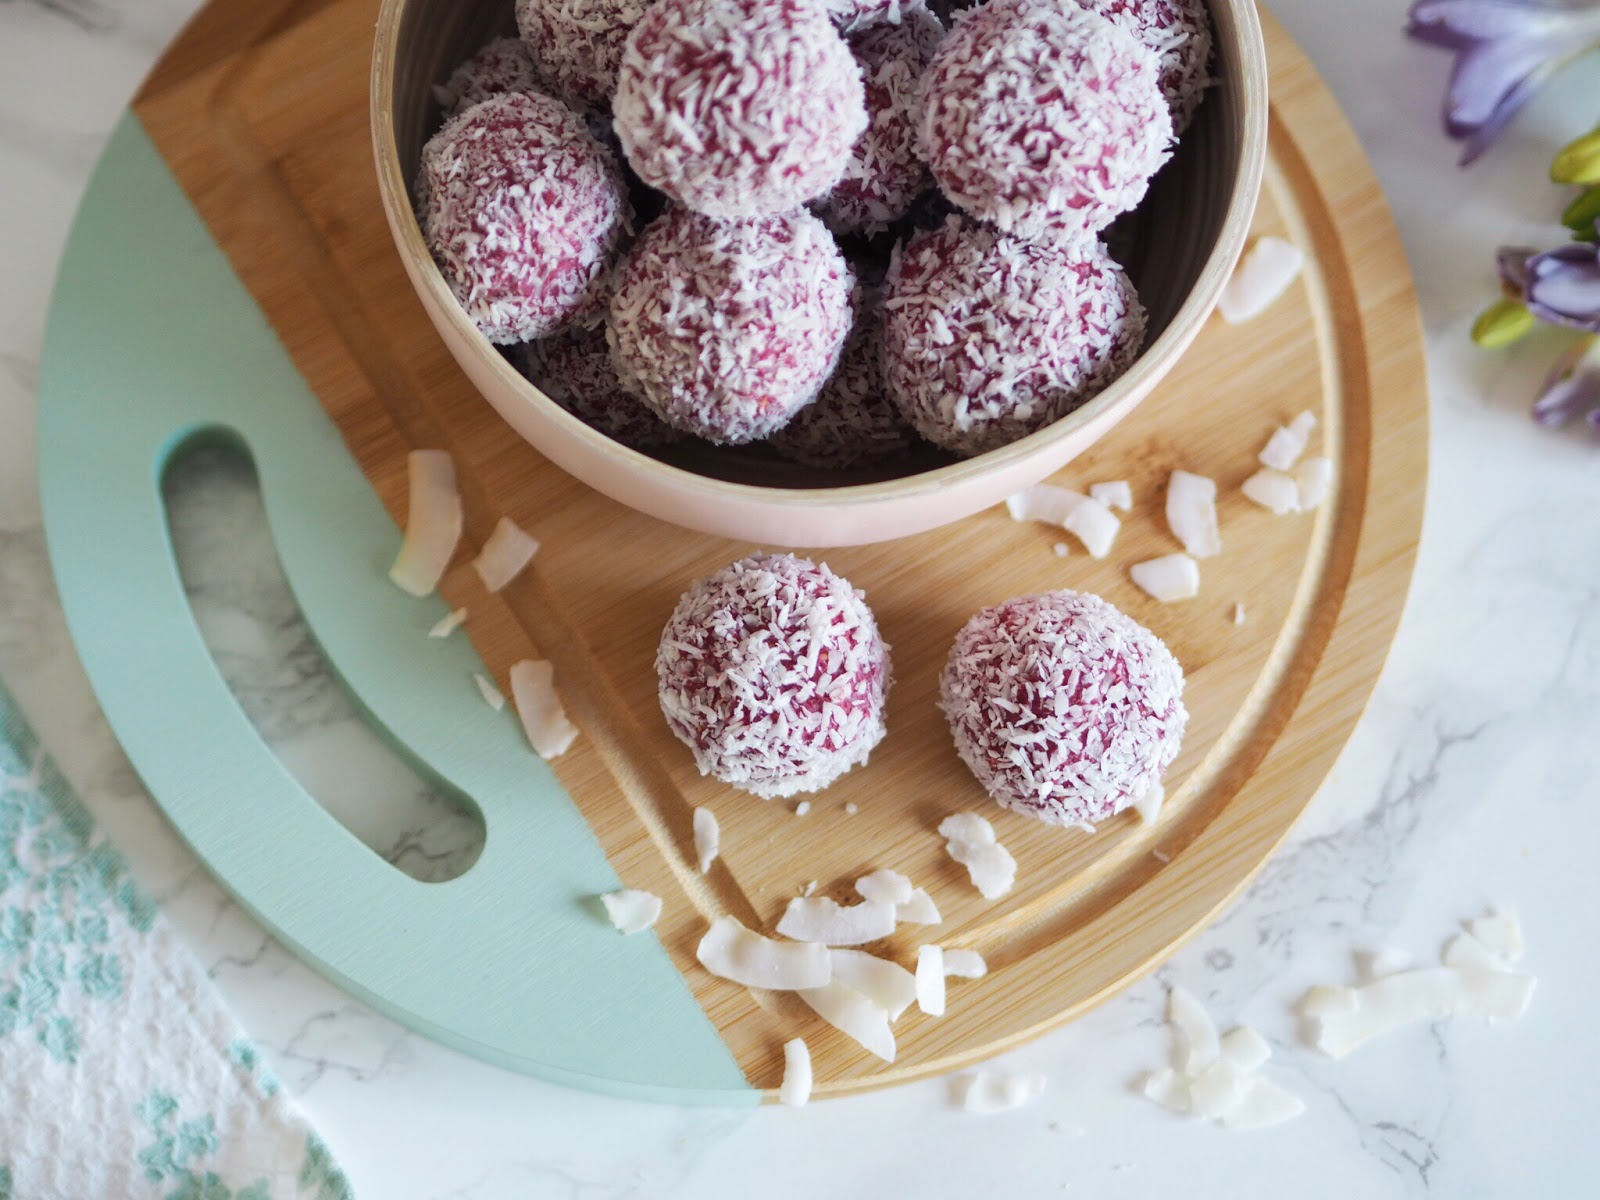 Raspberry and Coconut Pink Protein Energy Balls With Shredded Coconut